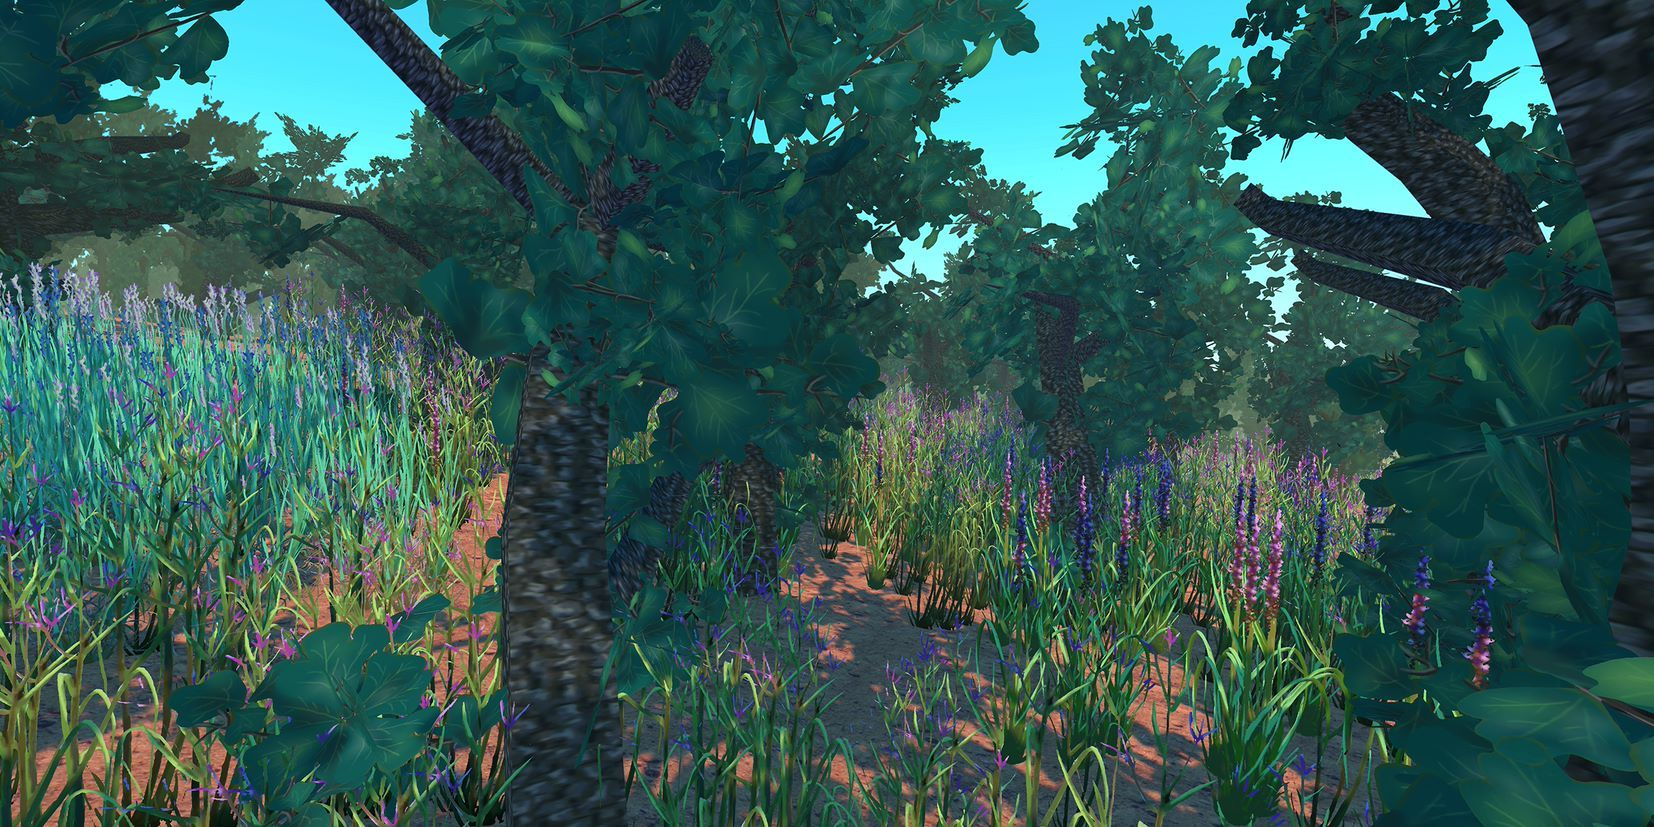 A digital rendering of oak trees and native grasses